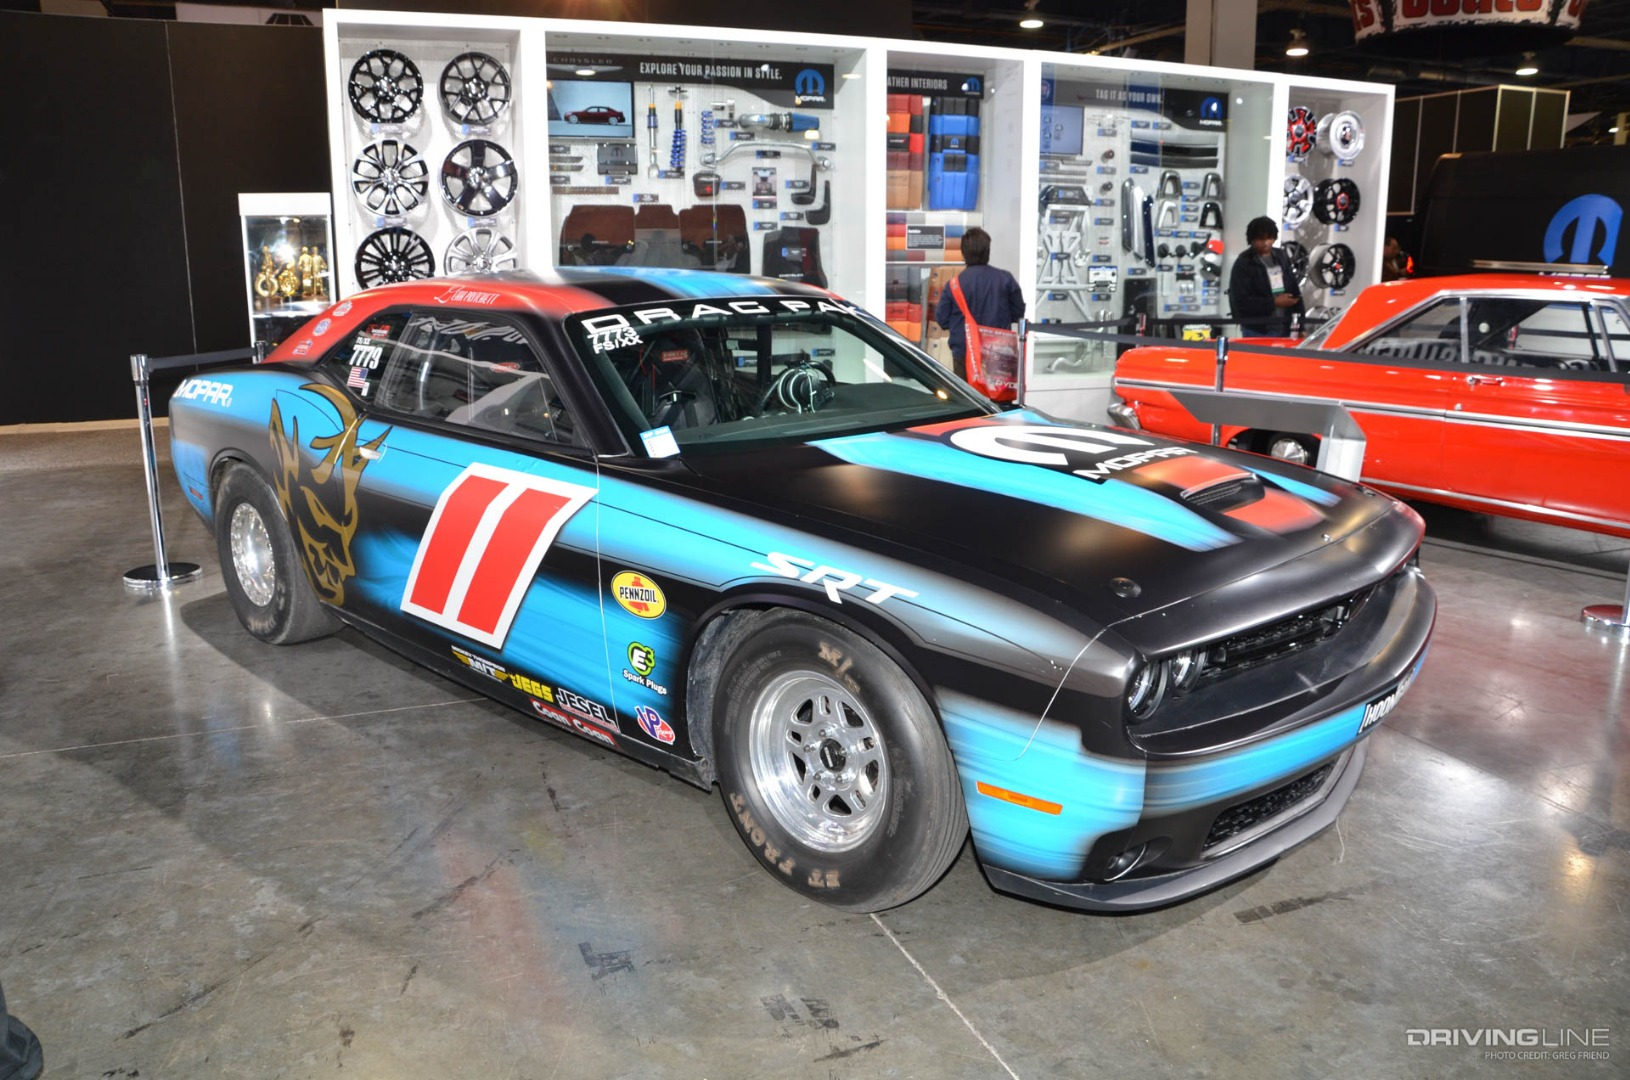 Top Stock Drag Cars of Today and Tomorrow | DrivingLine